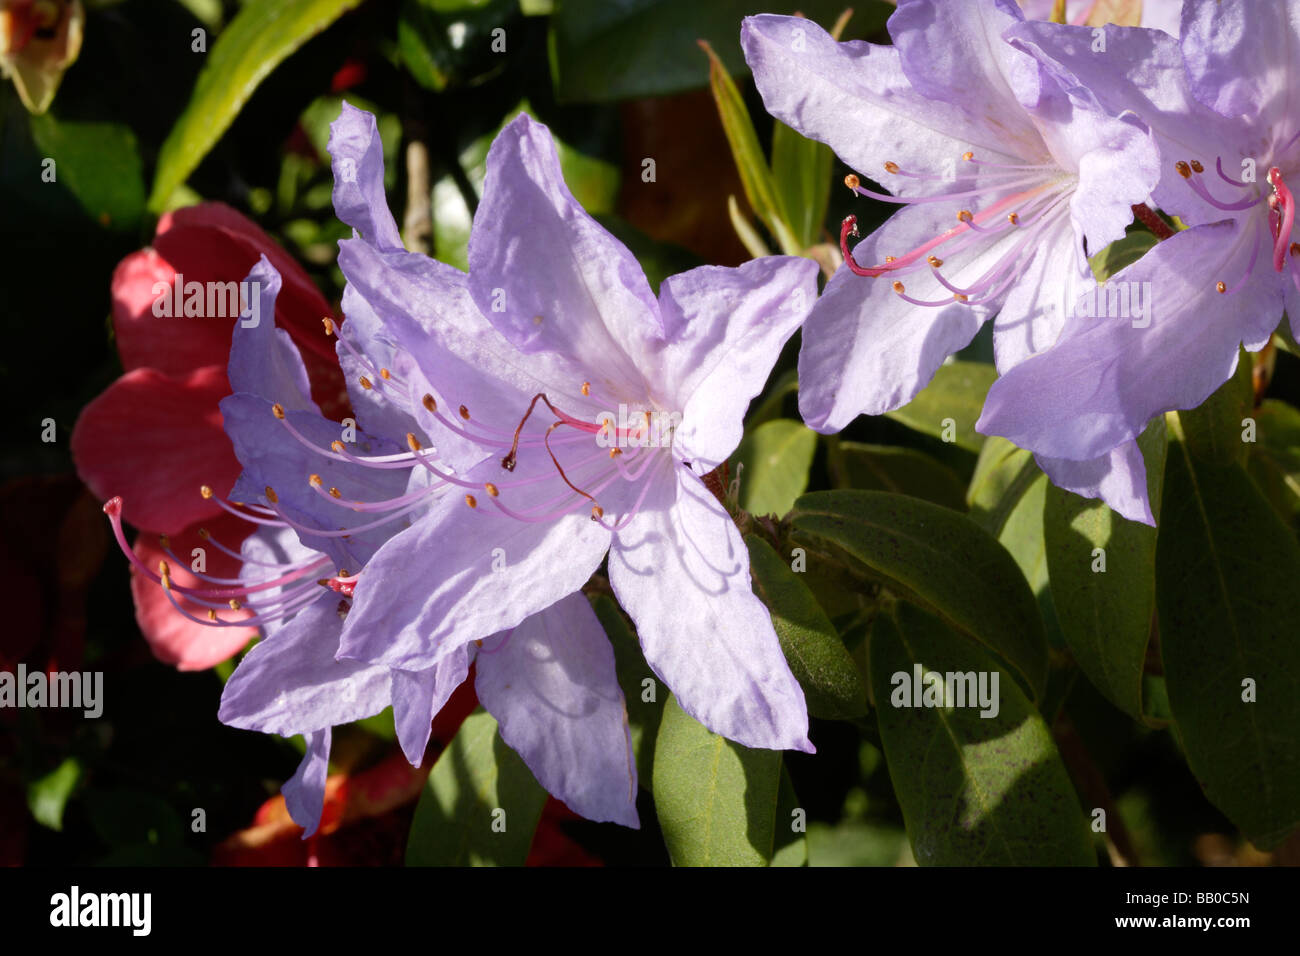 Rhododendron flowers - Stock Image